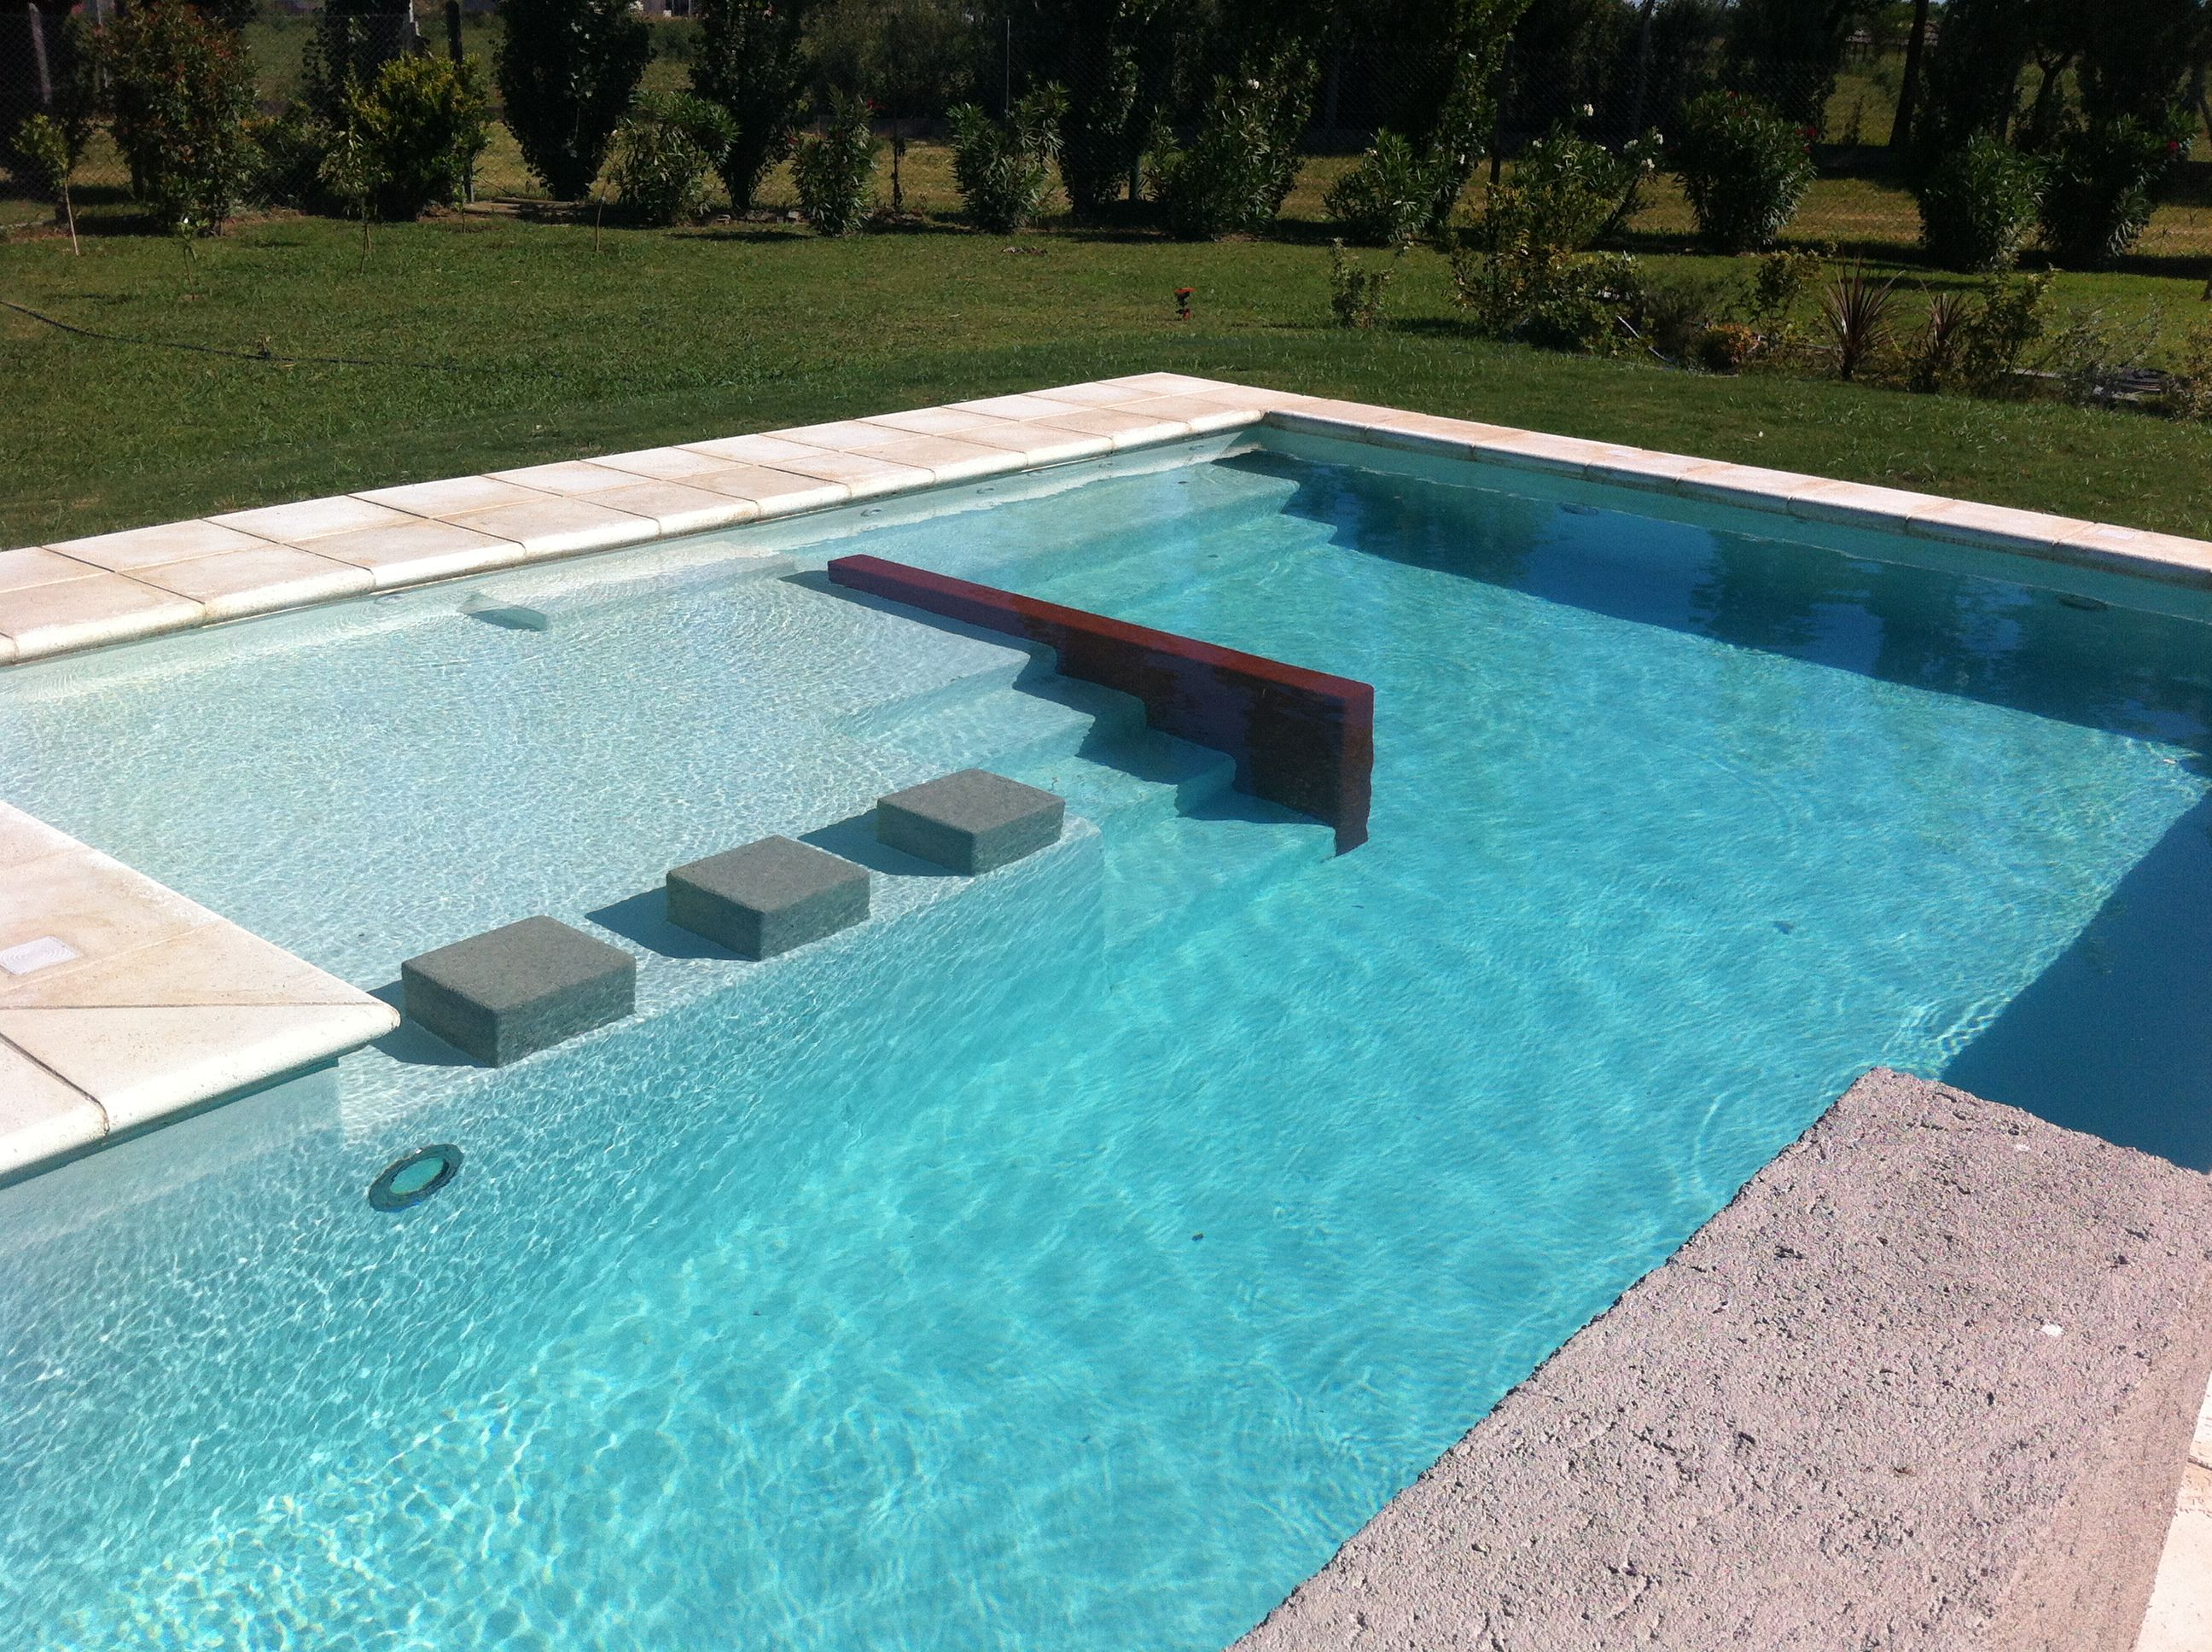 Piscinas swimmingpool wellnes arquitectura dise o for Espool piscinas